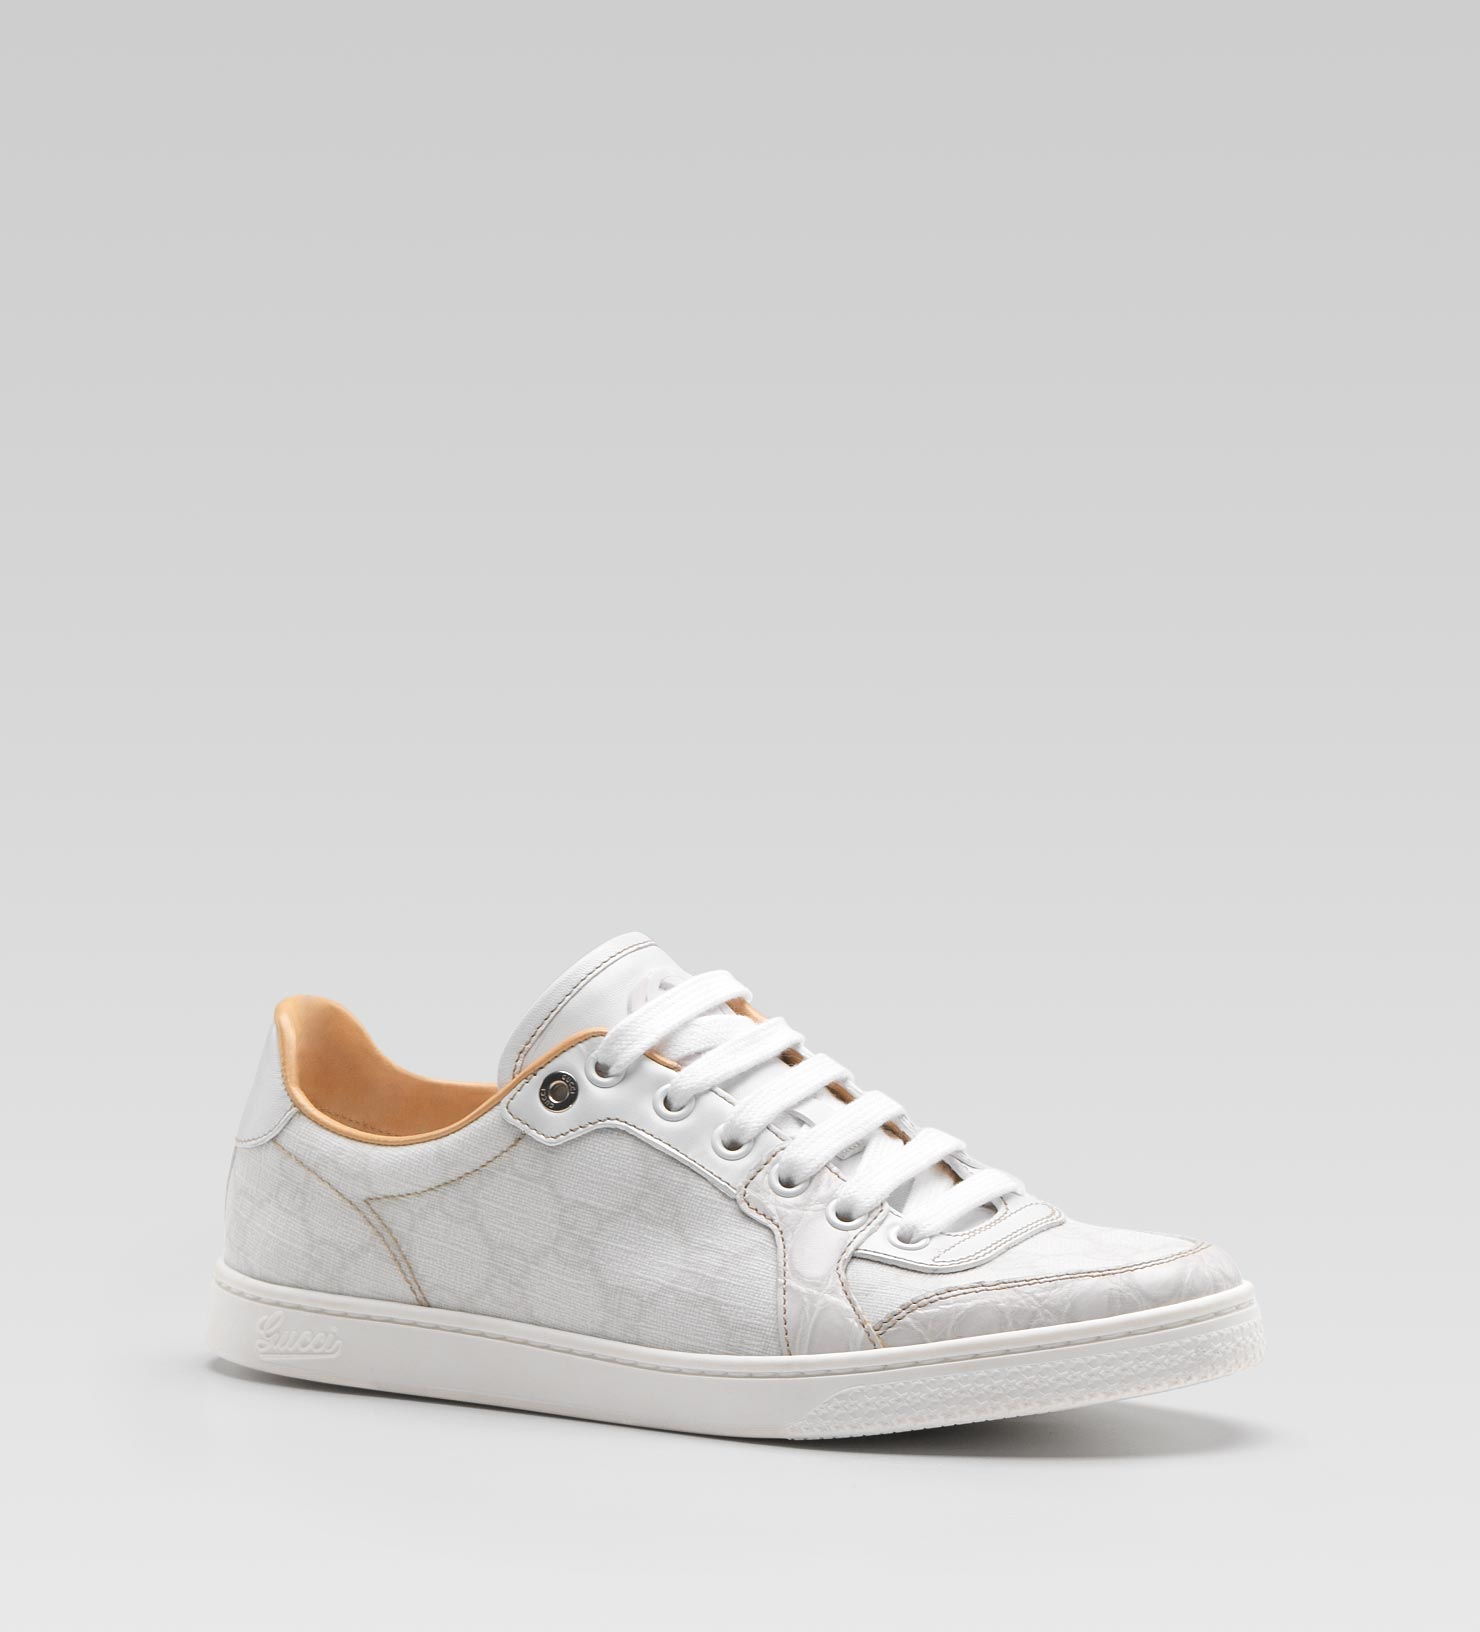 8fb0ea948 Gucci Coda Low Laceup Sneaker with Interlocking G Detail in White - Lyst